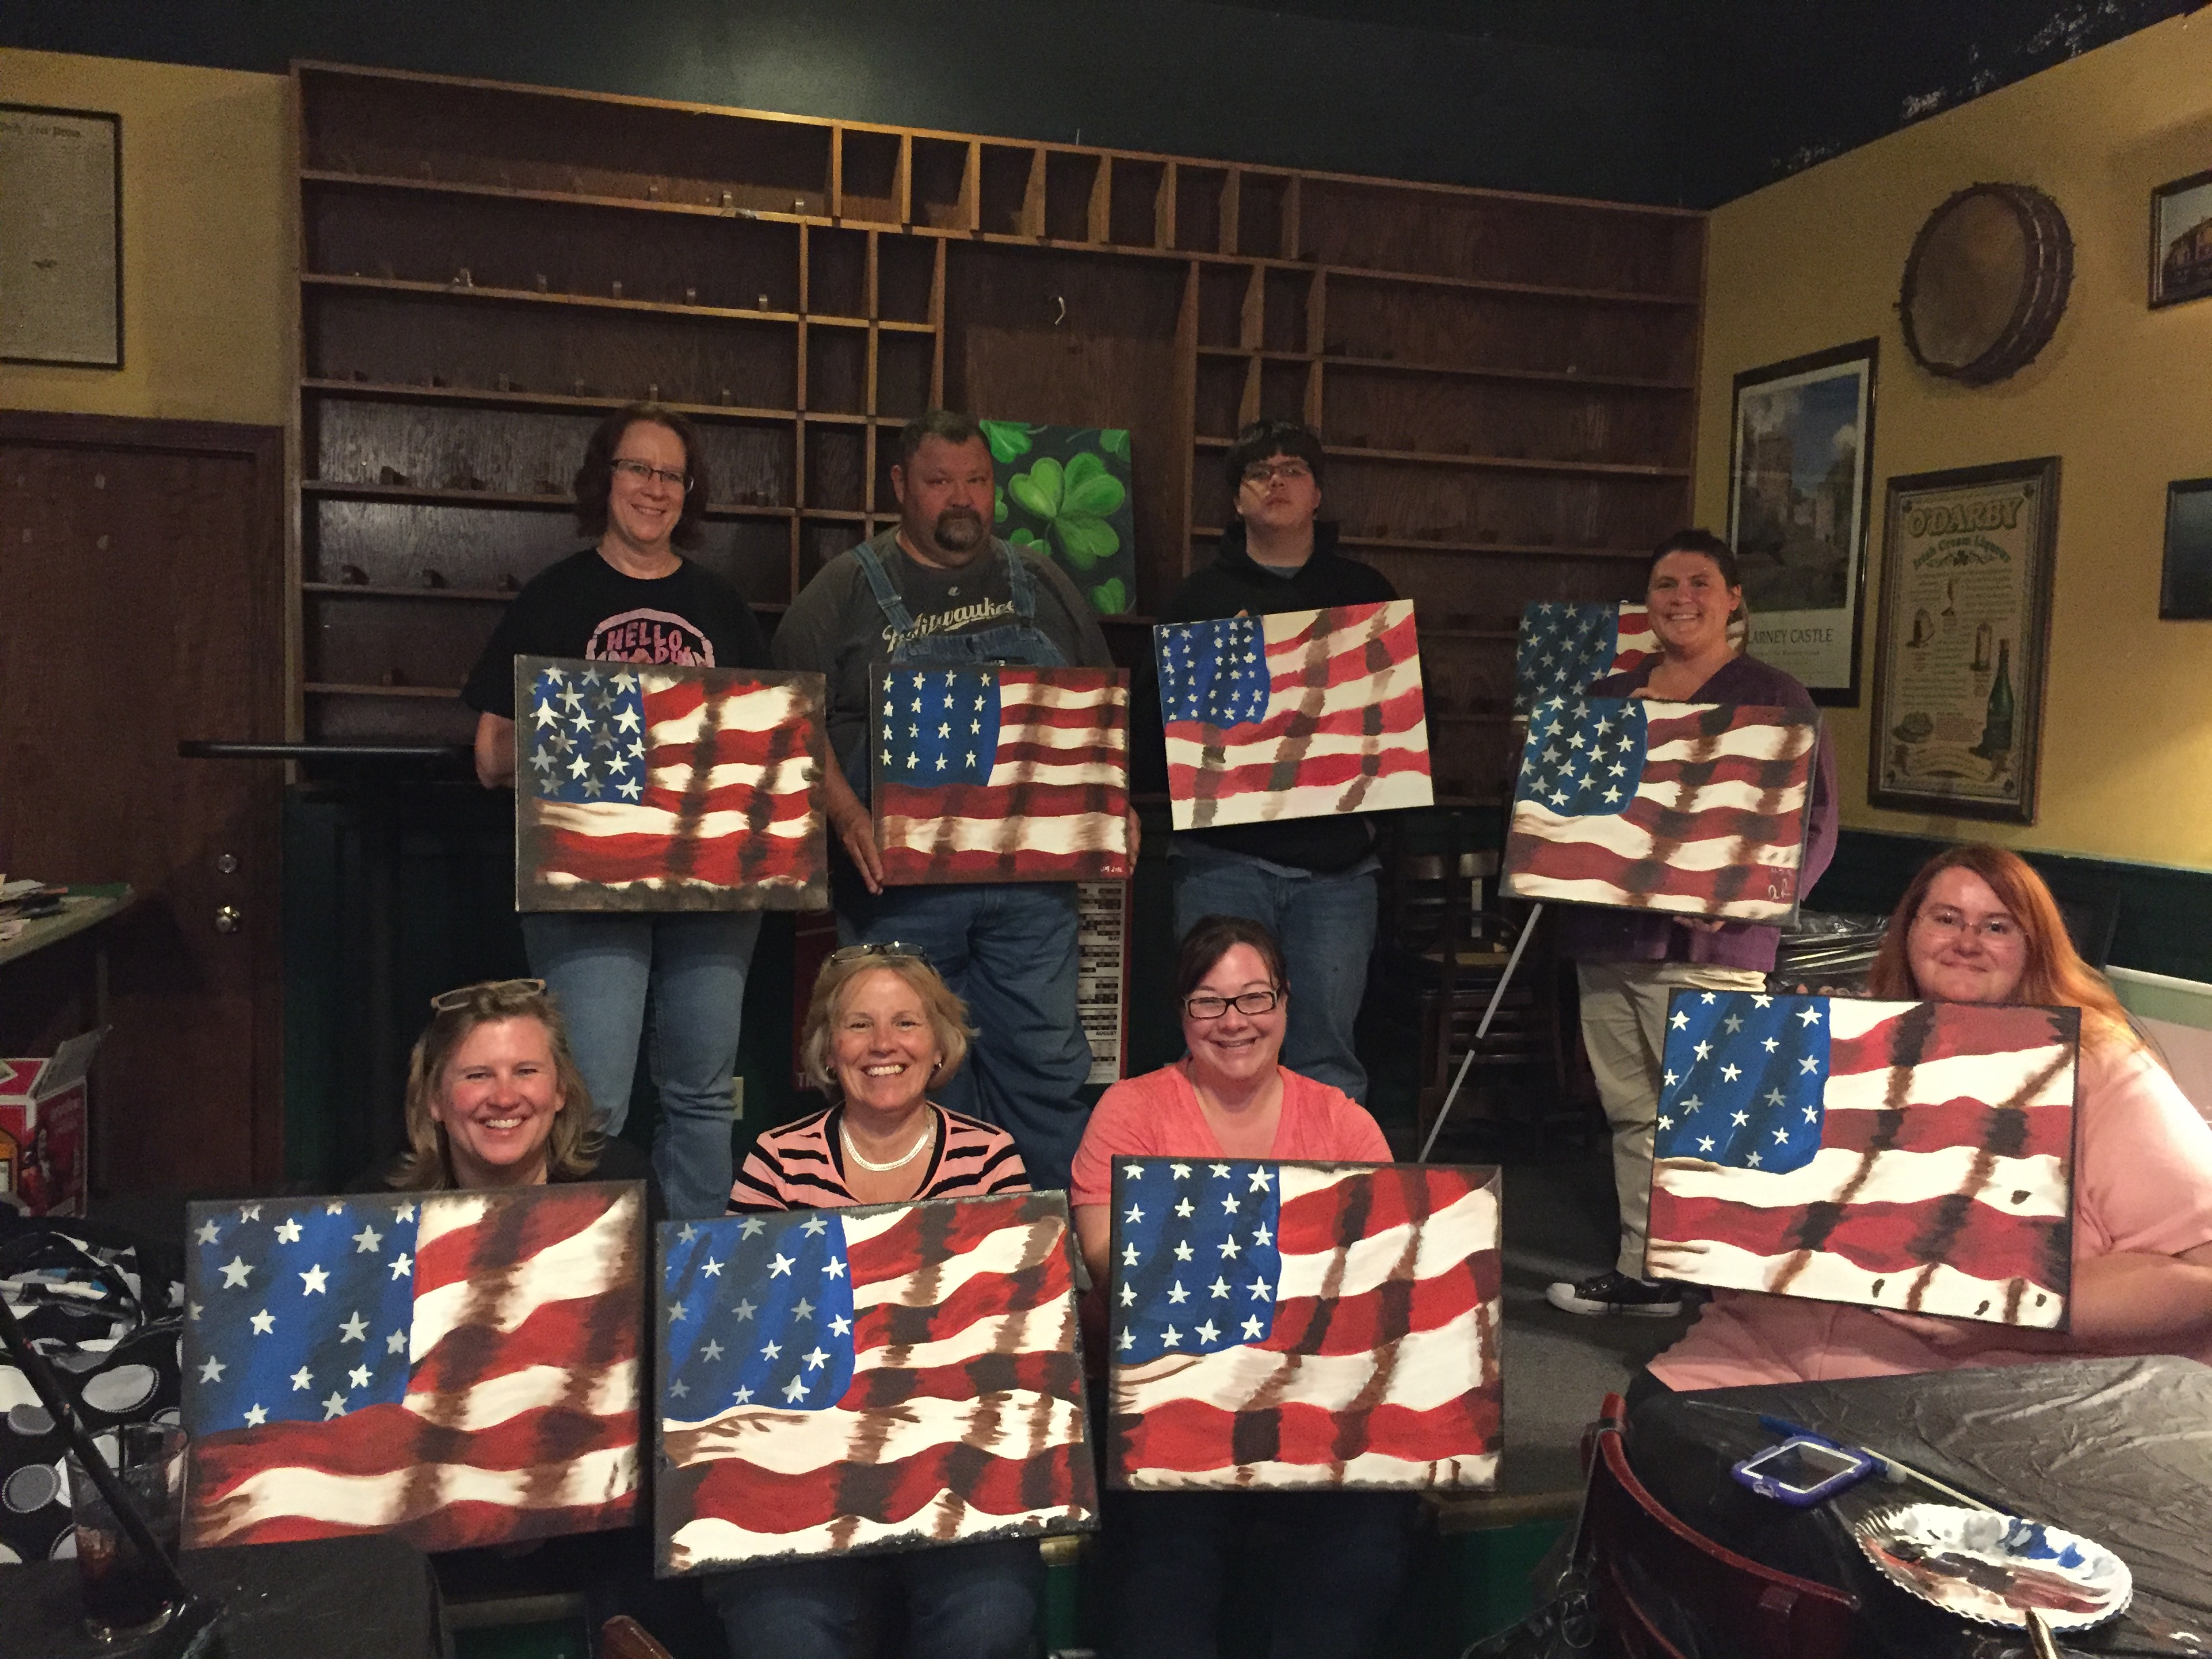 Old Glory paintings for Memorial Day at Suds 5/18/16